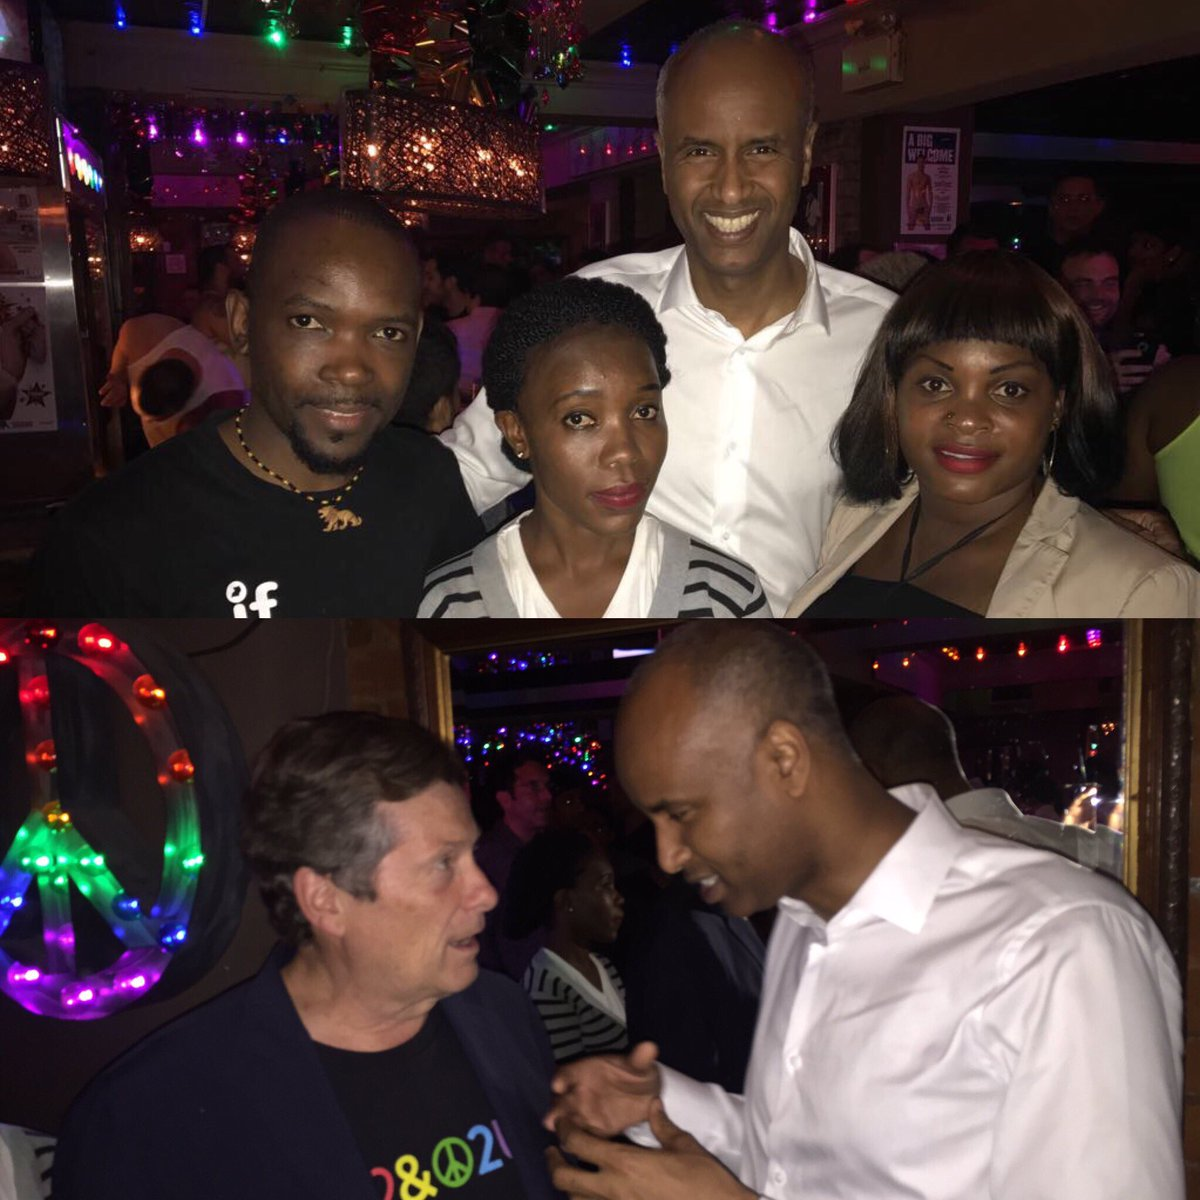 Enjoyed Pride Pub night at #Woody&#39;s. Mayor @JohnTory knows how to throw parties. #LoveisLove <br>http://pic.twitter.com/StAVRTrvtw